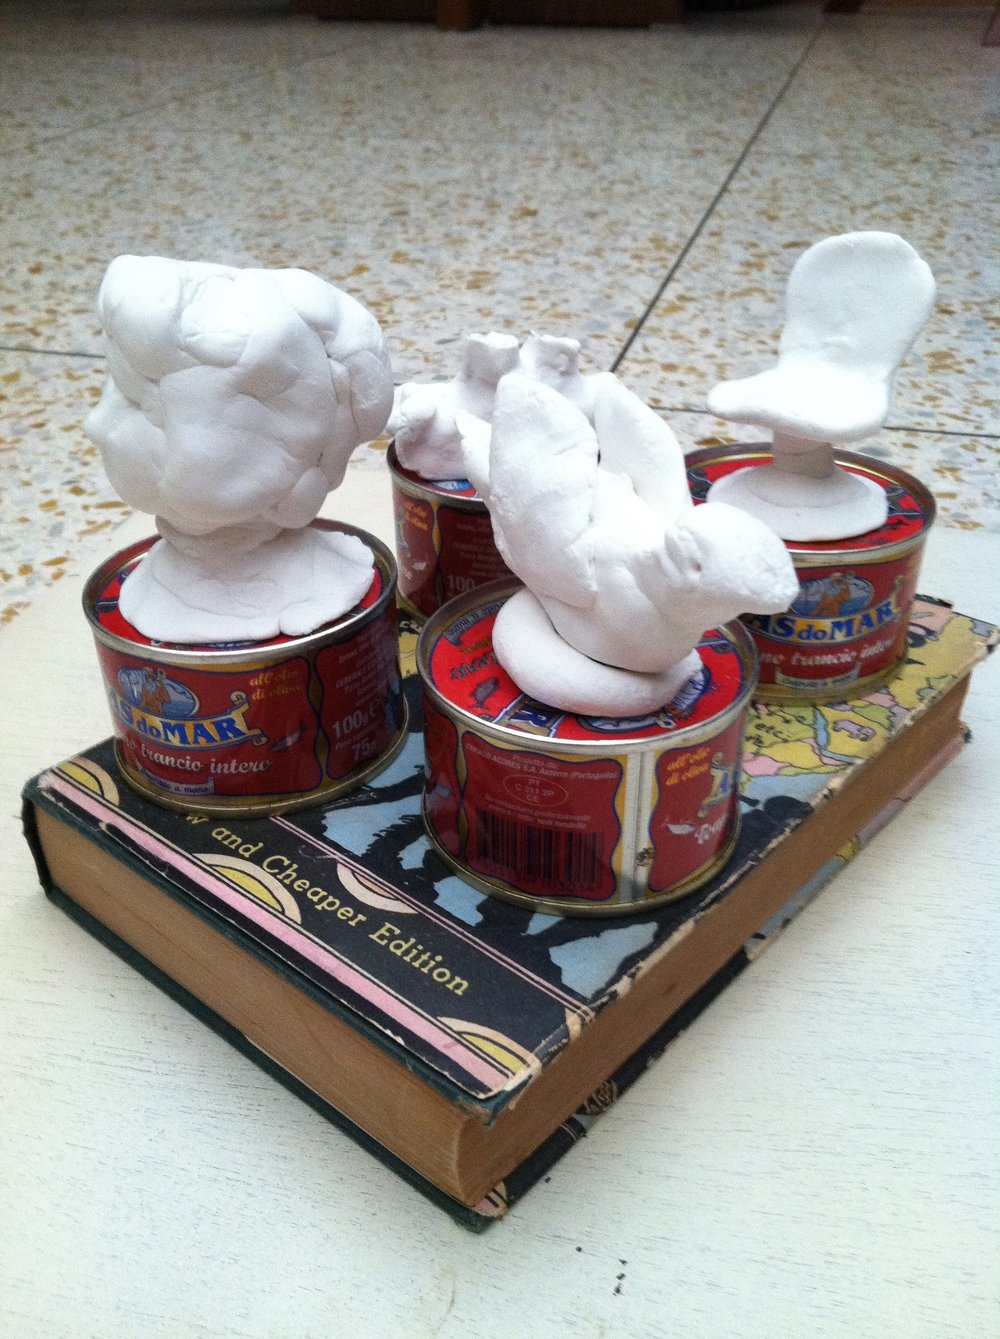 Plaster narrative sculptures from So Made workshop